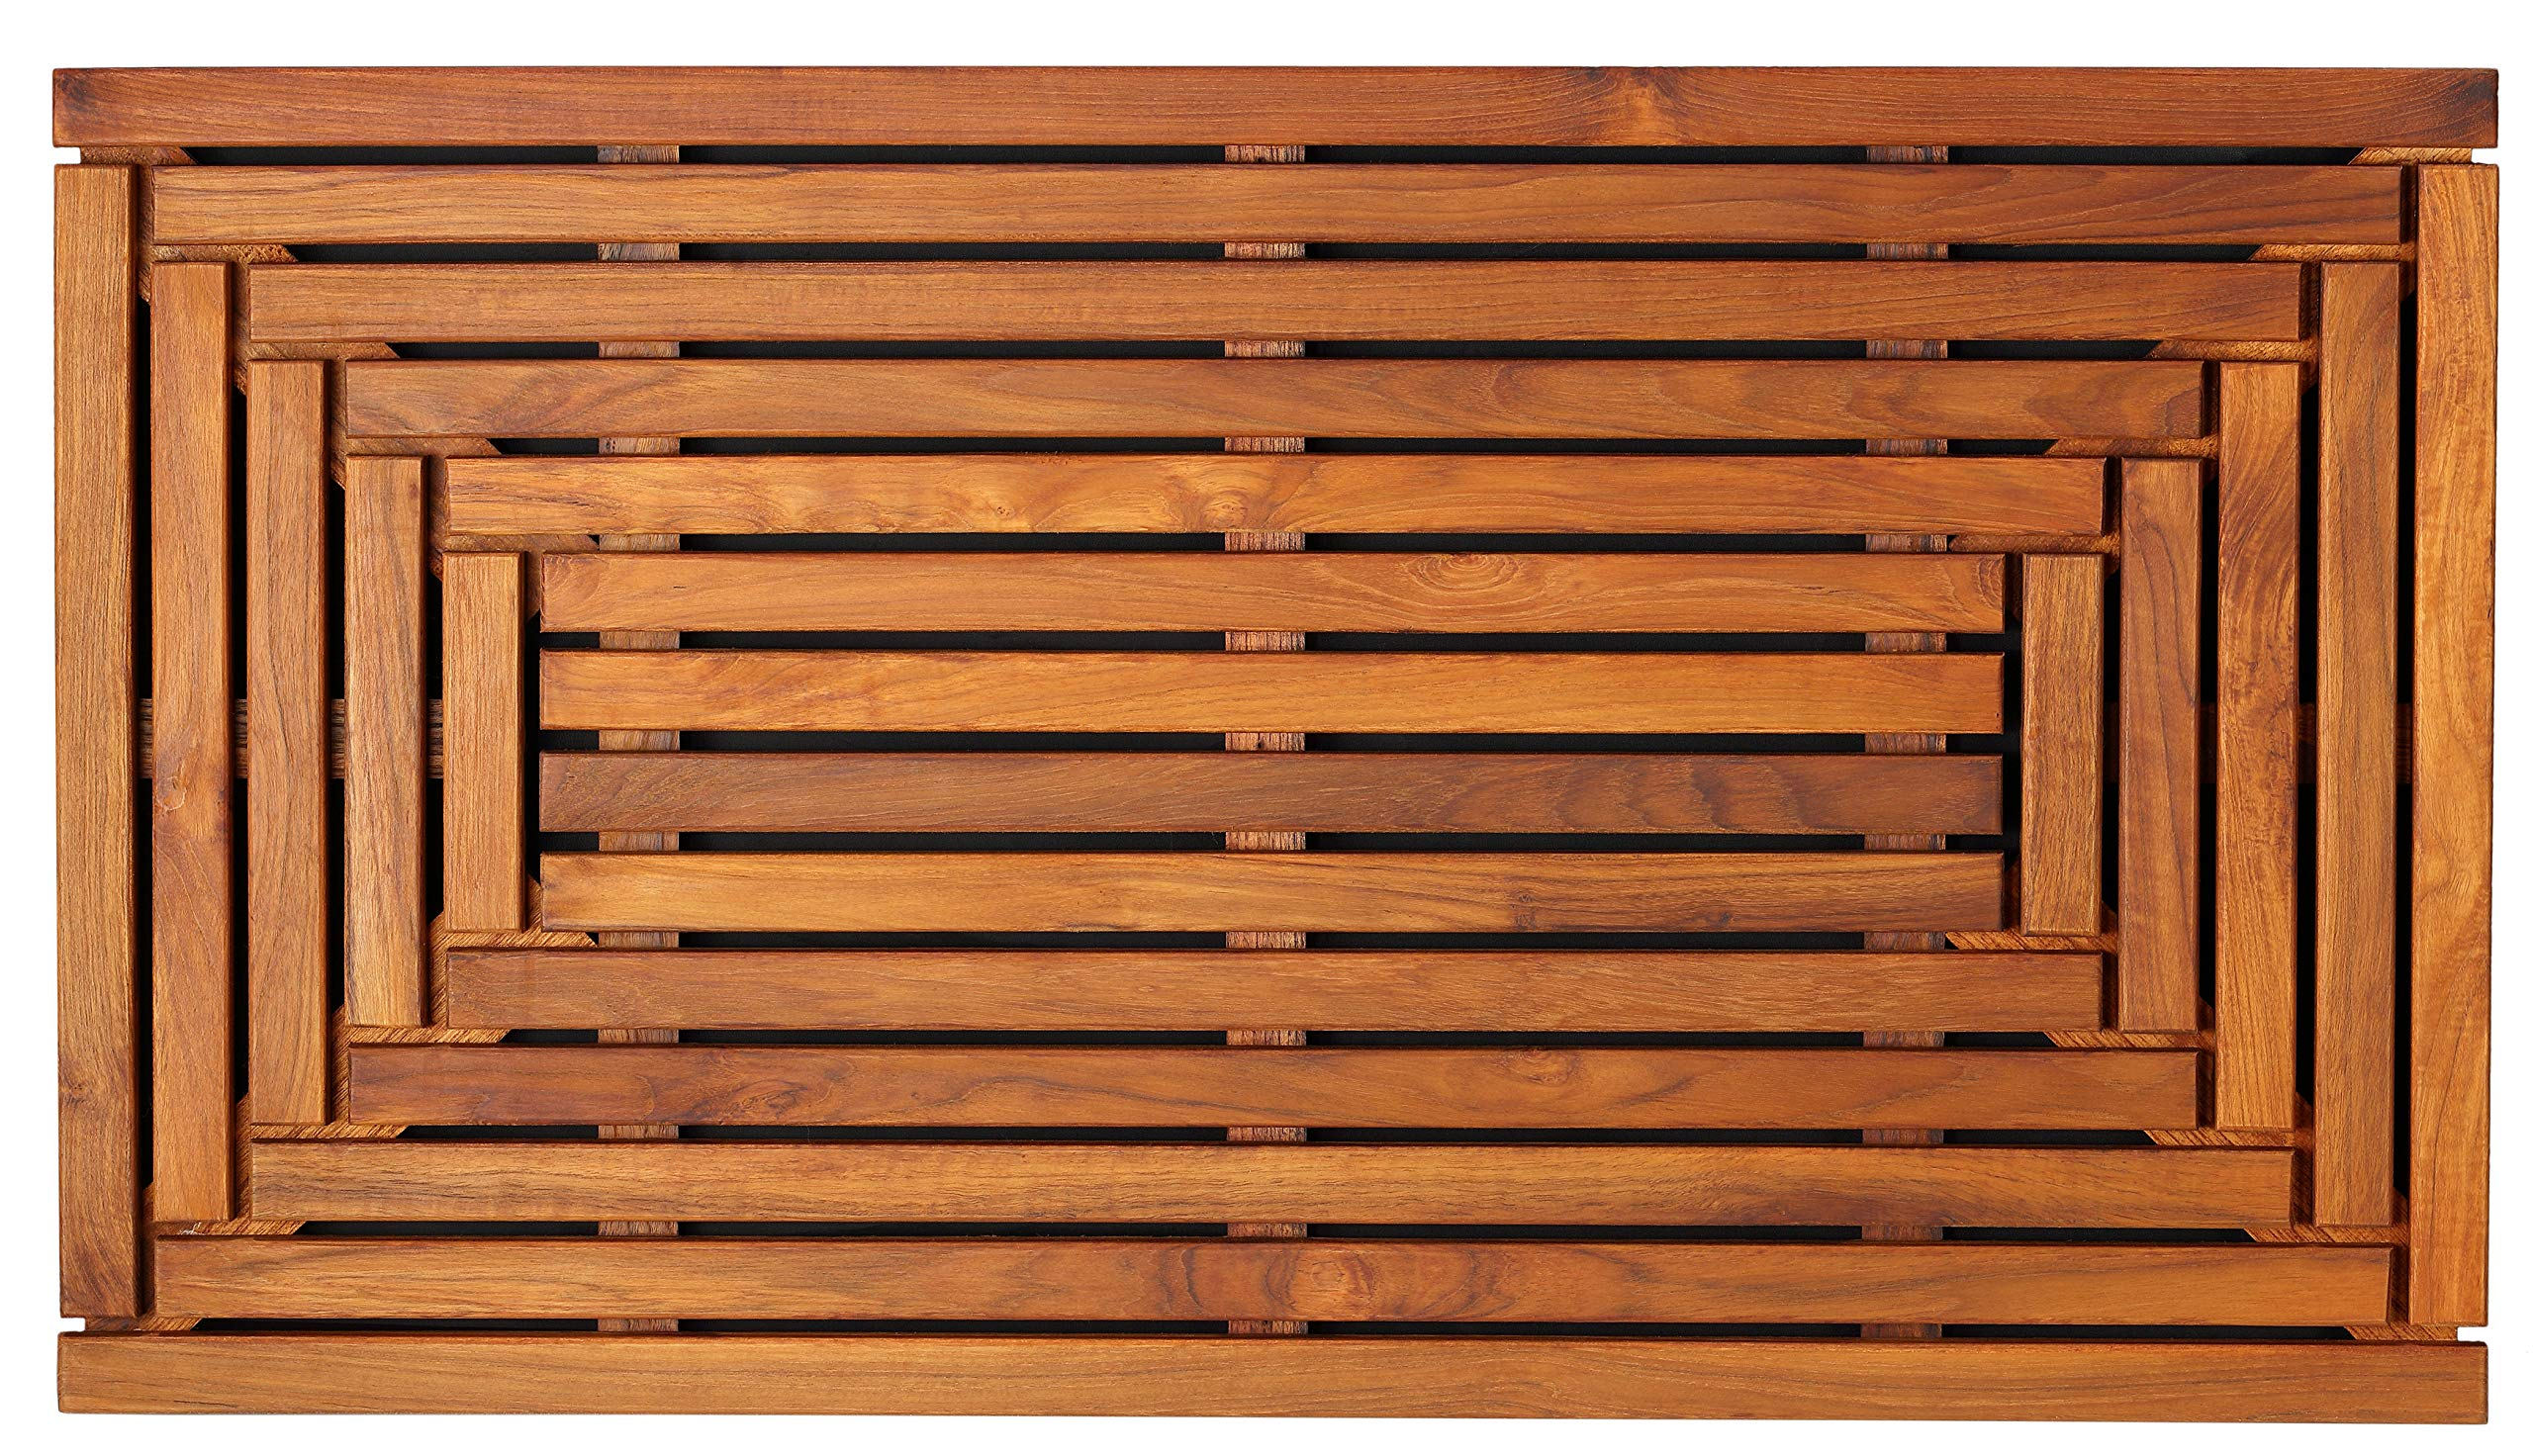 Bare Decor Giza Shower, Spa, Door Mat in Solid Teak Wood and Oiled Finish 35.5'' x 19.75''